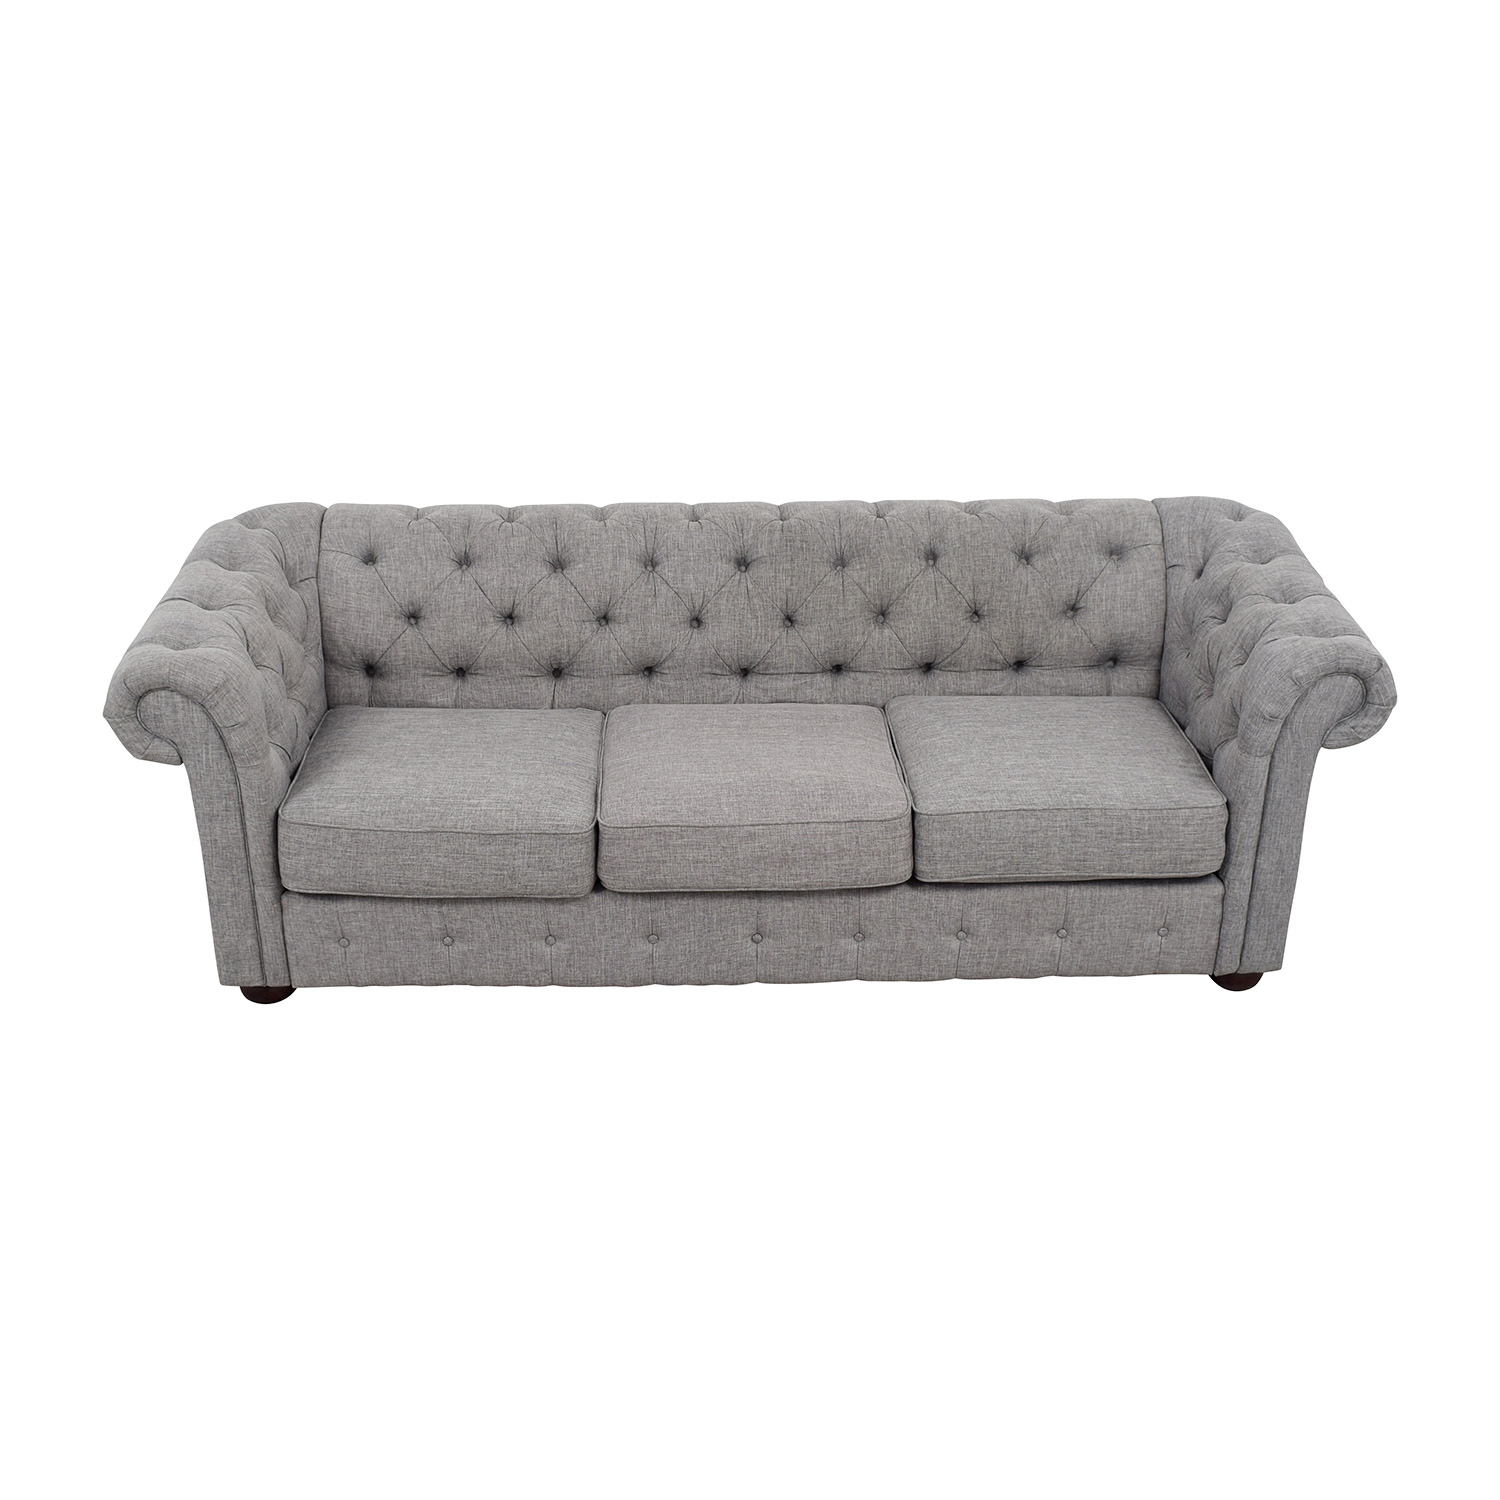 used chesterfield sofas sale bobs furniture leather sofa. Black Bedroom Furniture Sets. Home Design Ideas